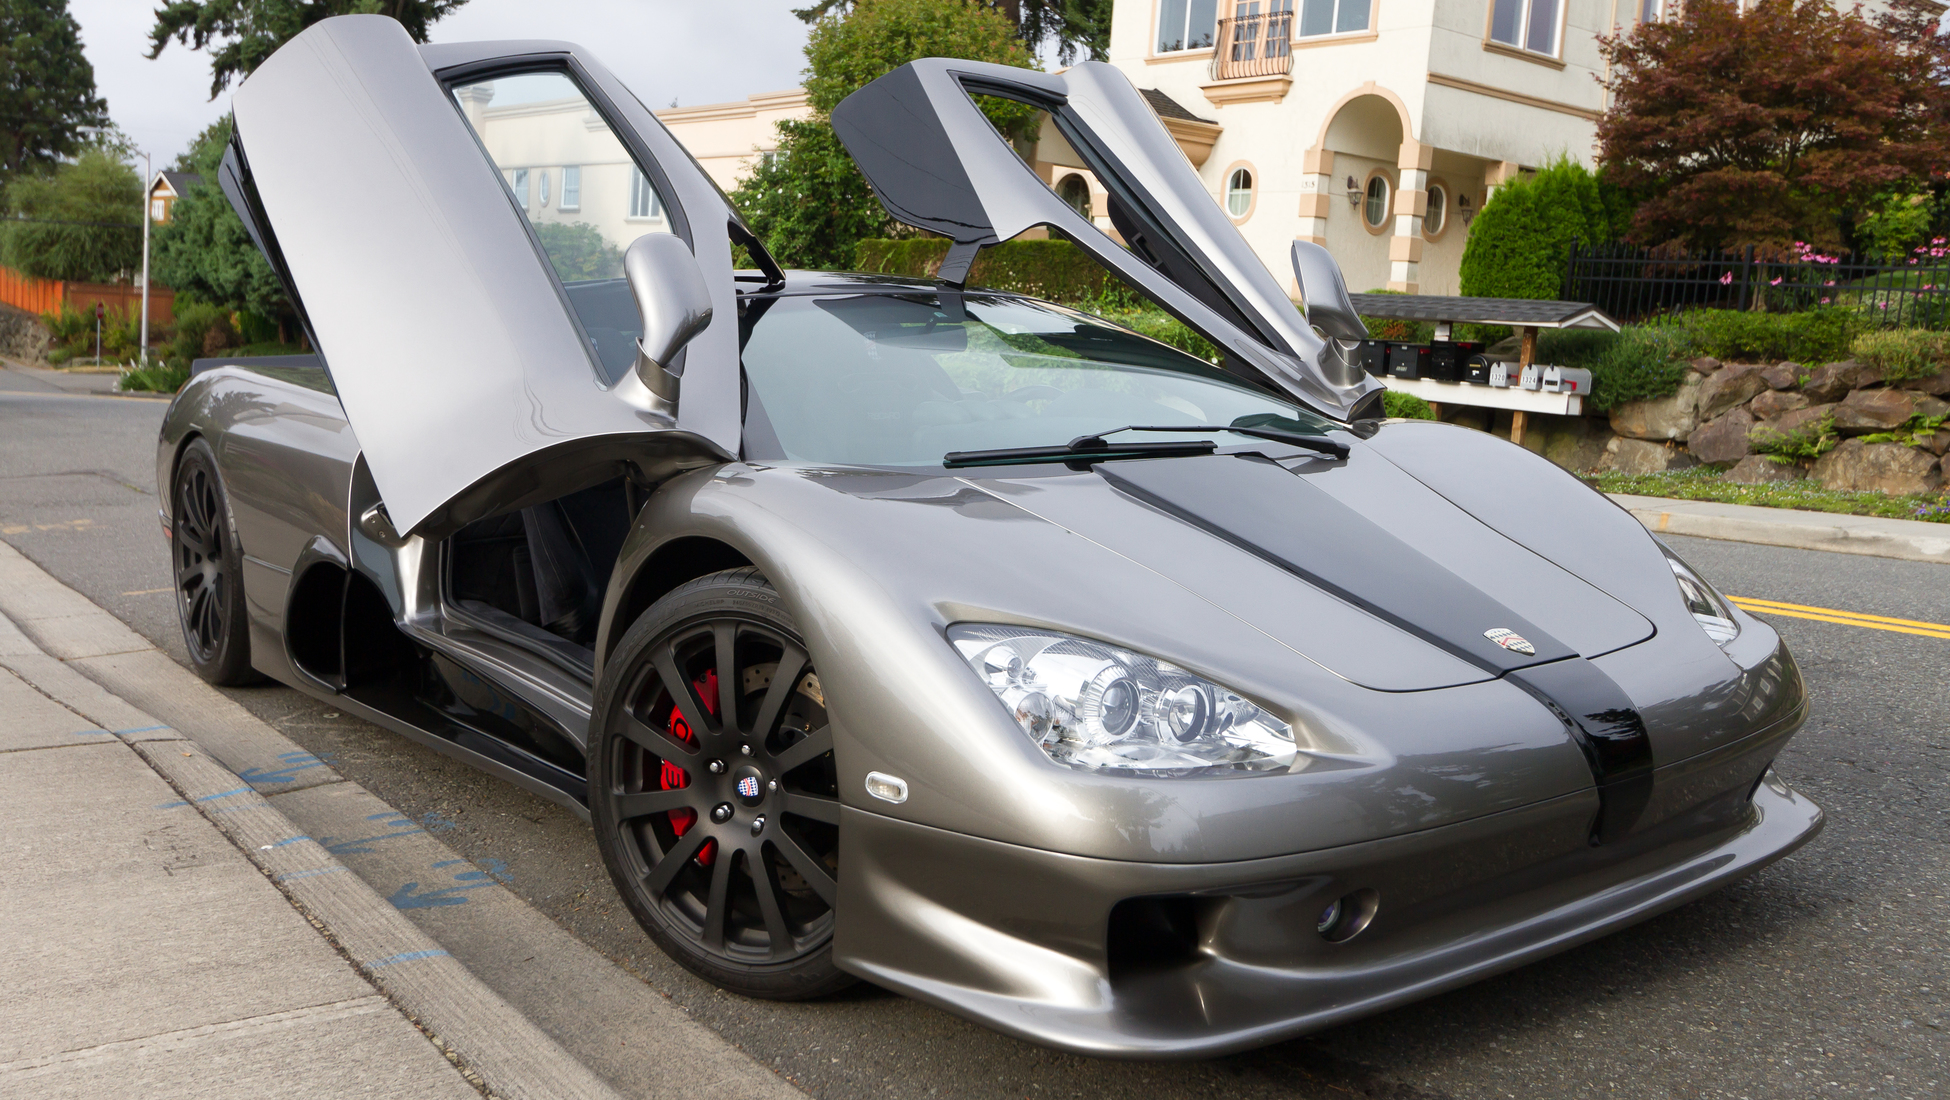 Top 5 Fastest Cars >> Top 5 Fastest Production Cars Catawiki